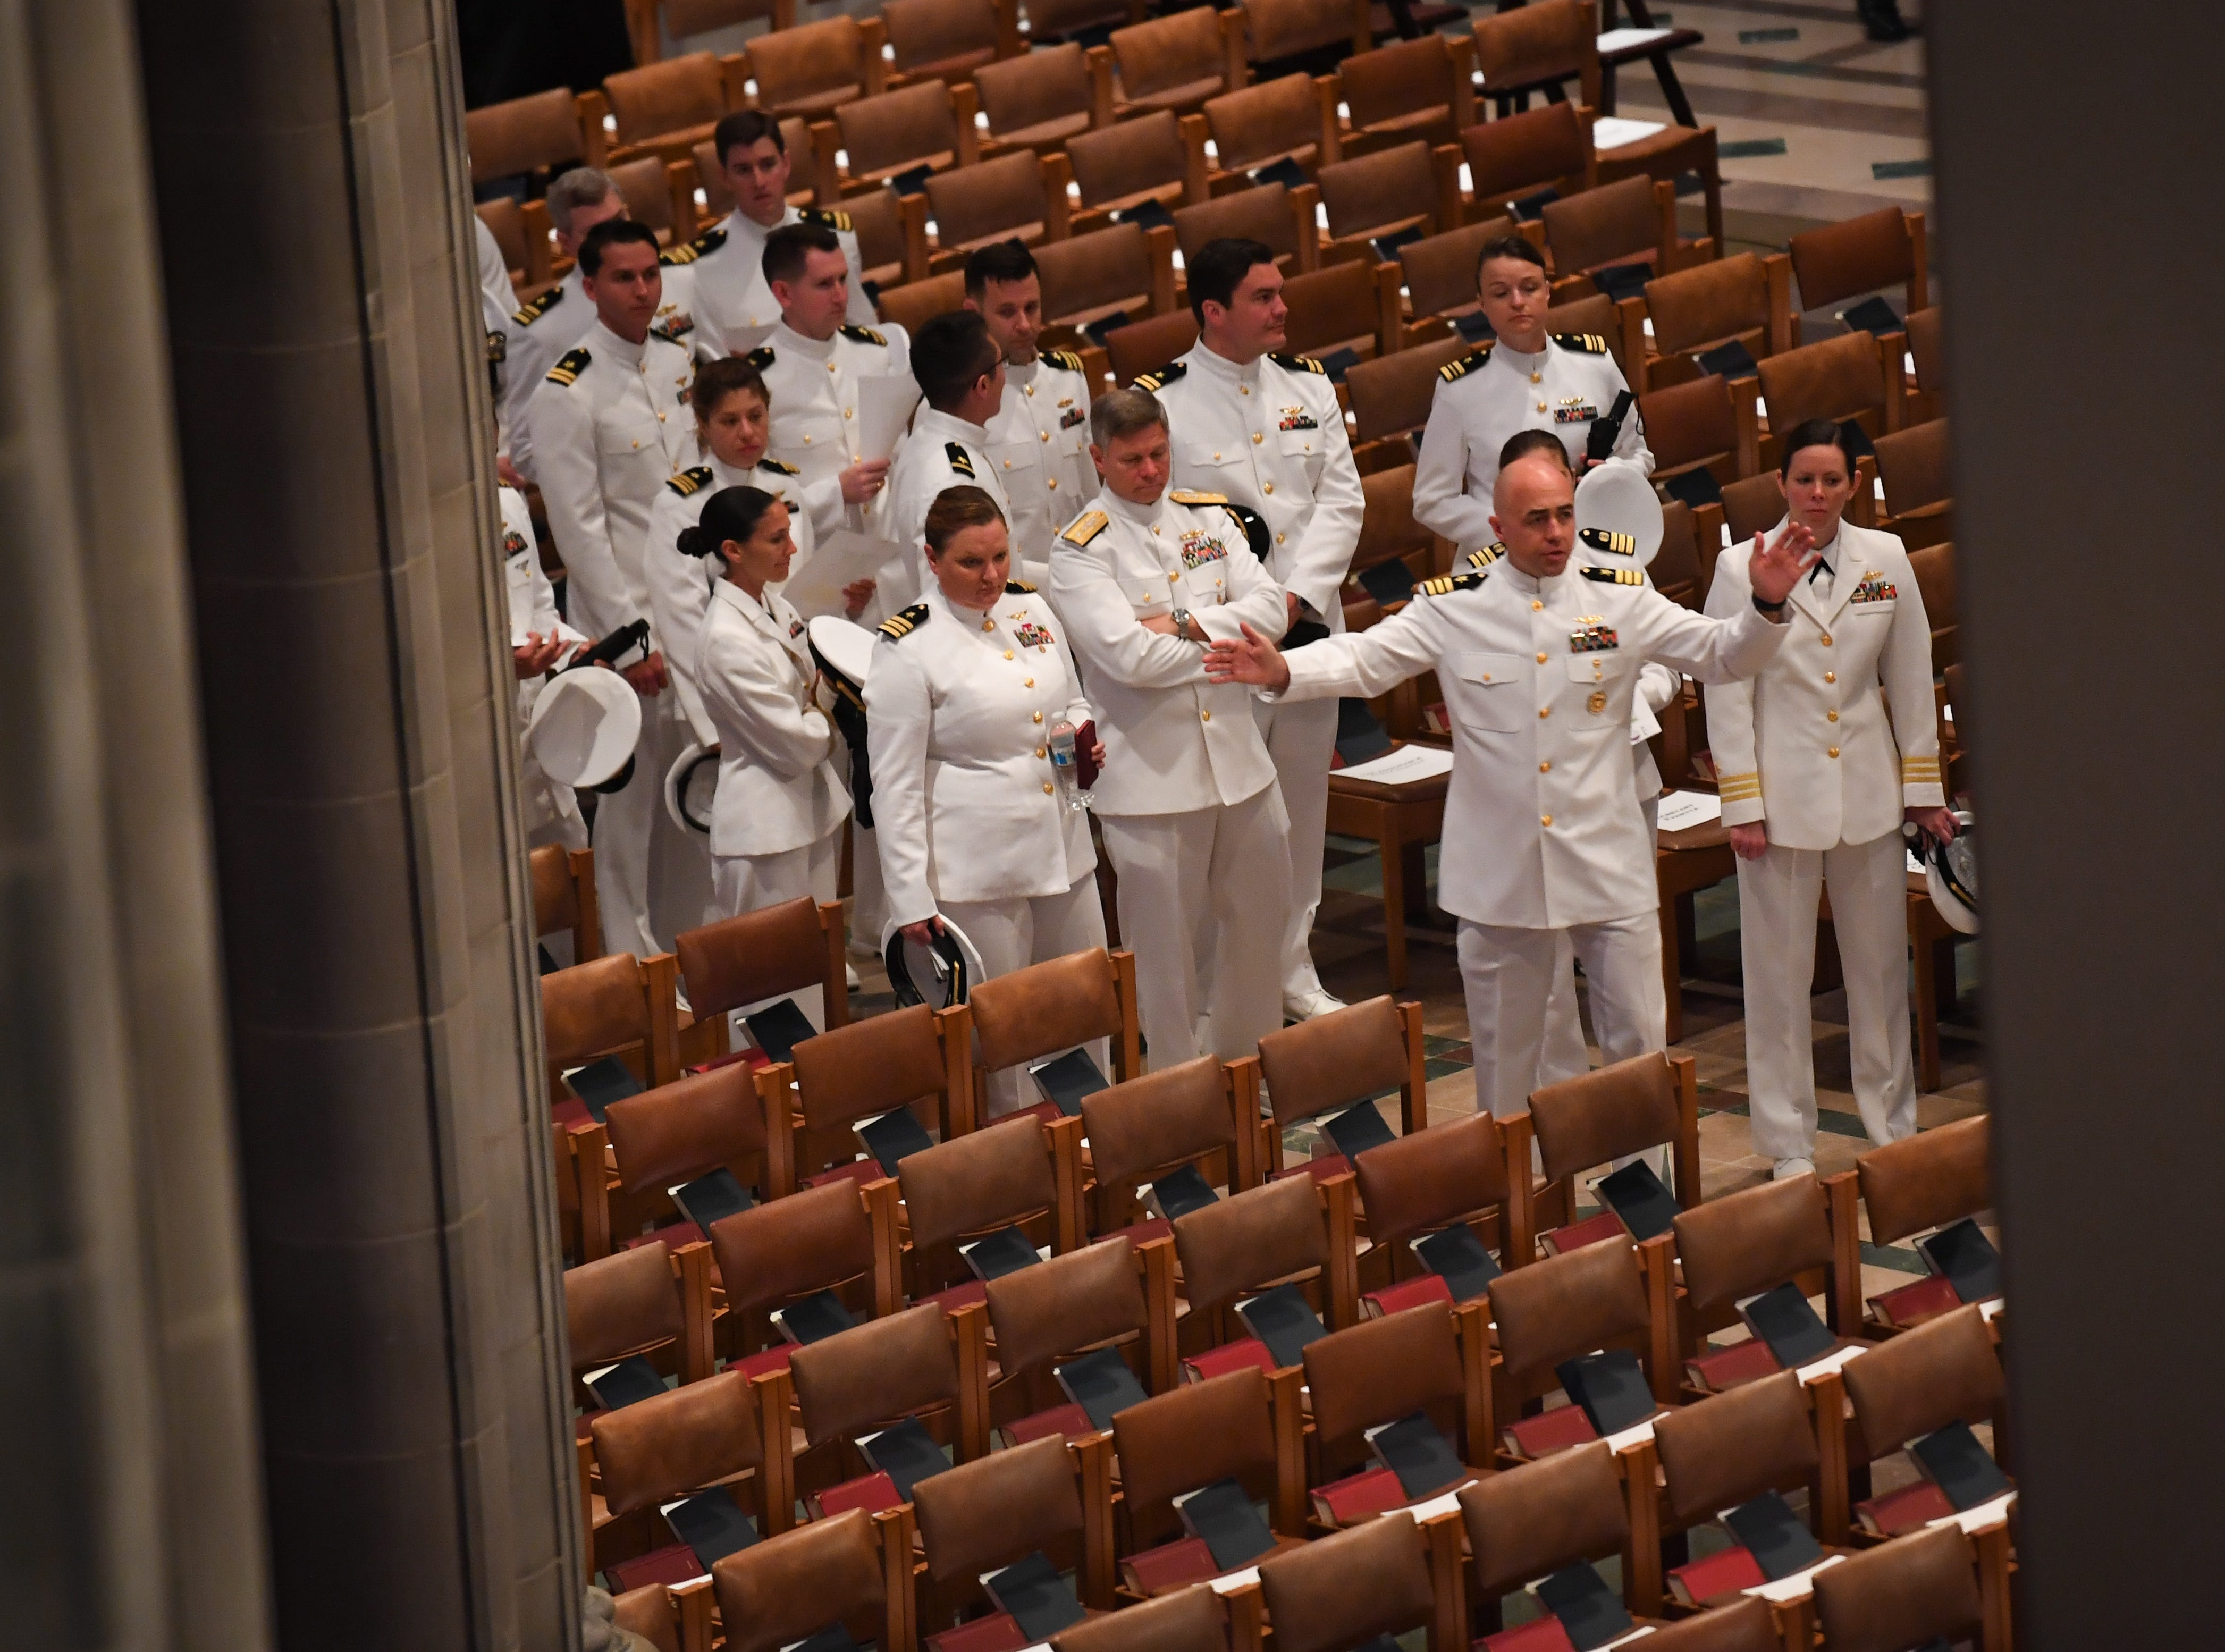 Naval officers prepare for the memorial service for John McCain at the National Cathedral.